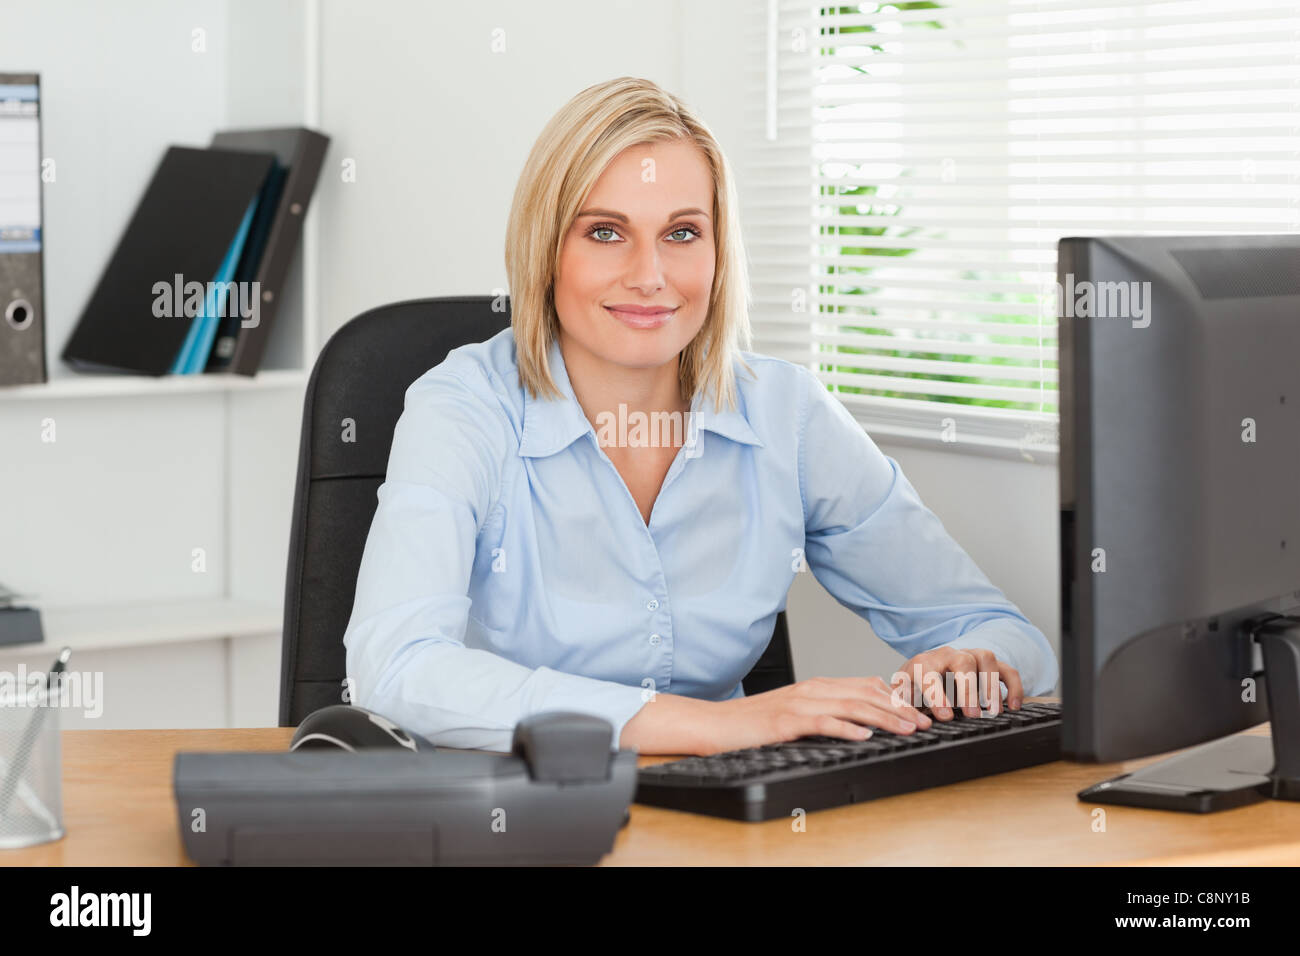 Working woman in front of a screen looks into camera Stock Photo